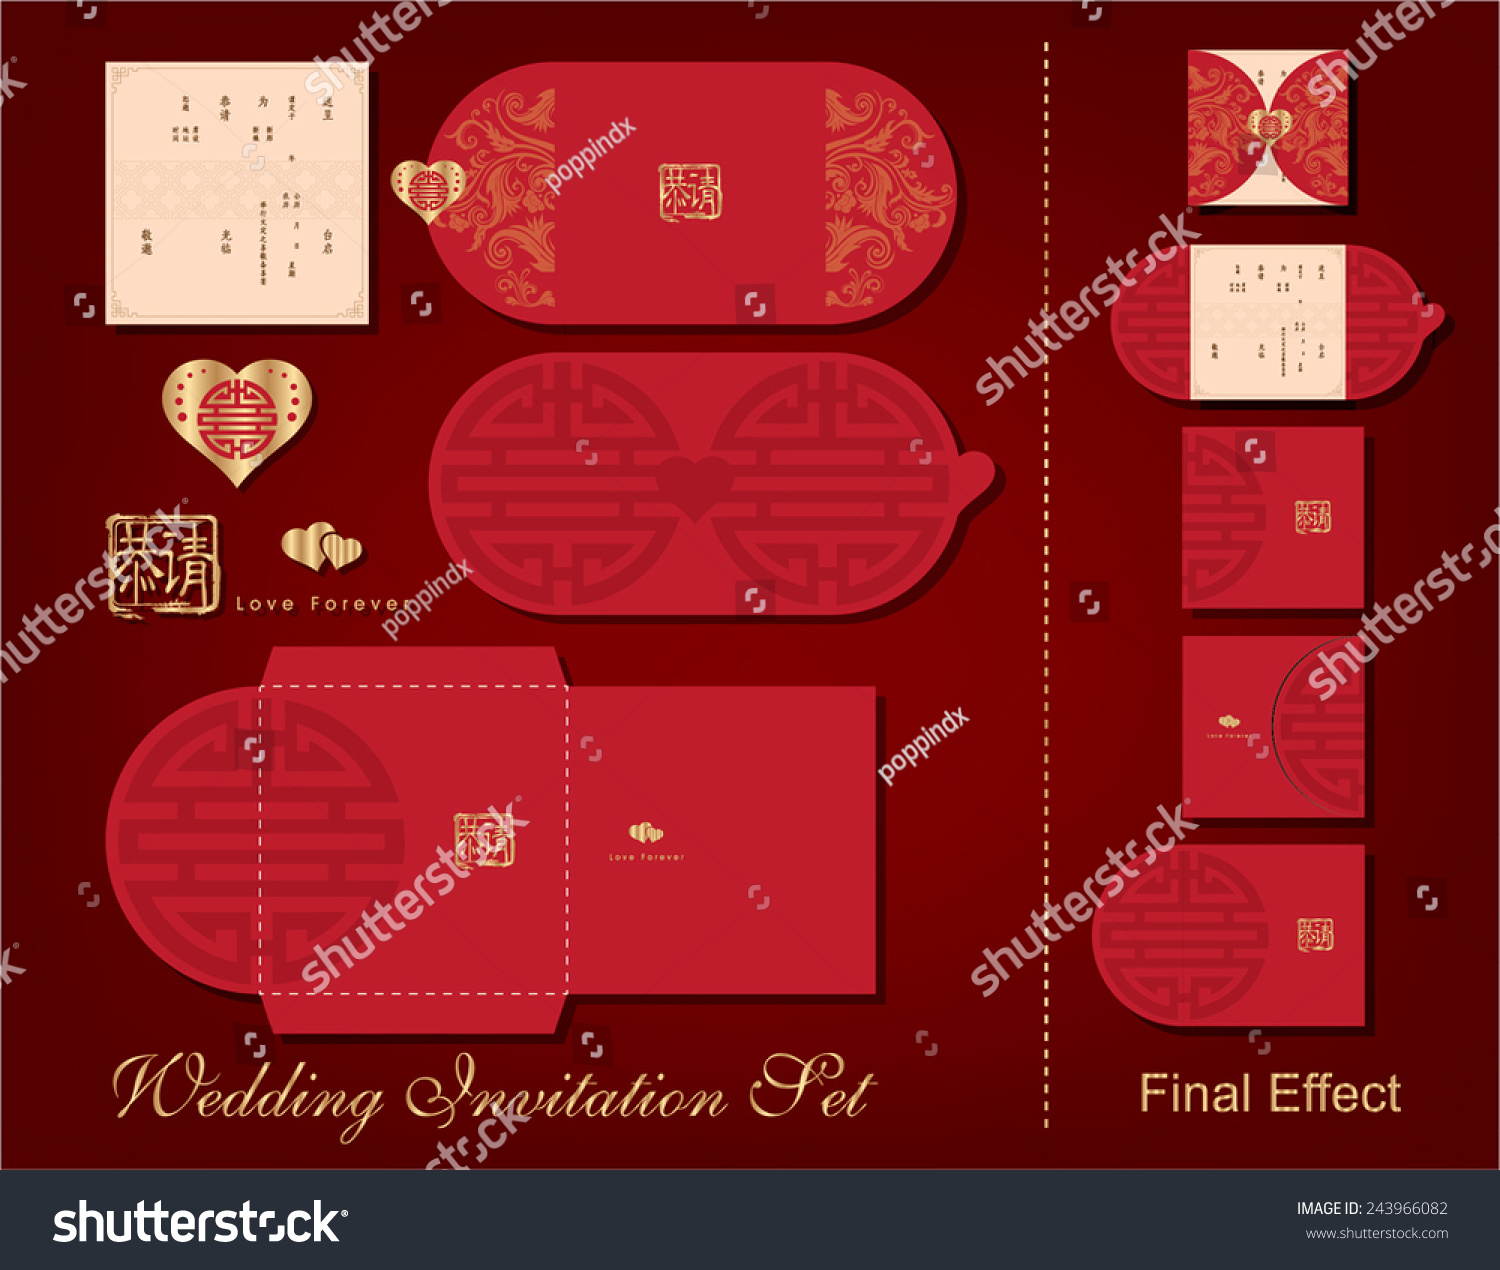 Complete Wedding Invitation Set Include Card Stock Vector (Royalty ...